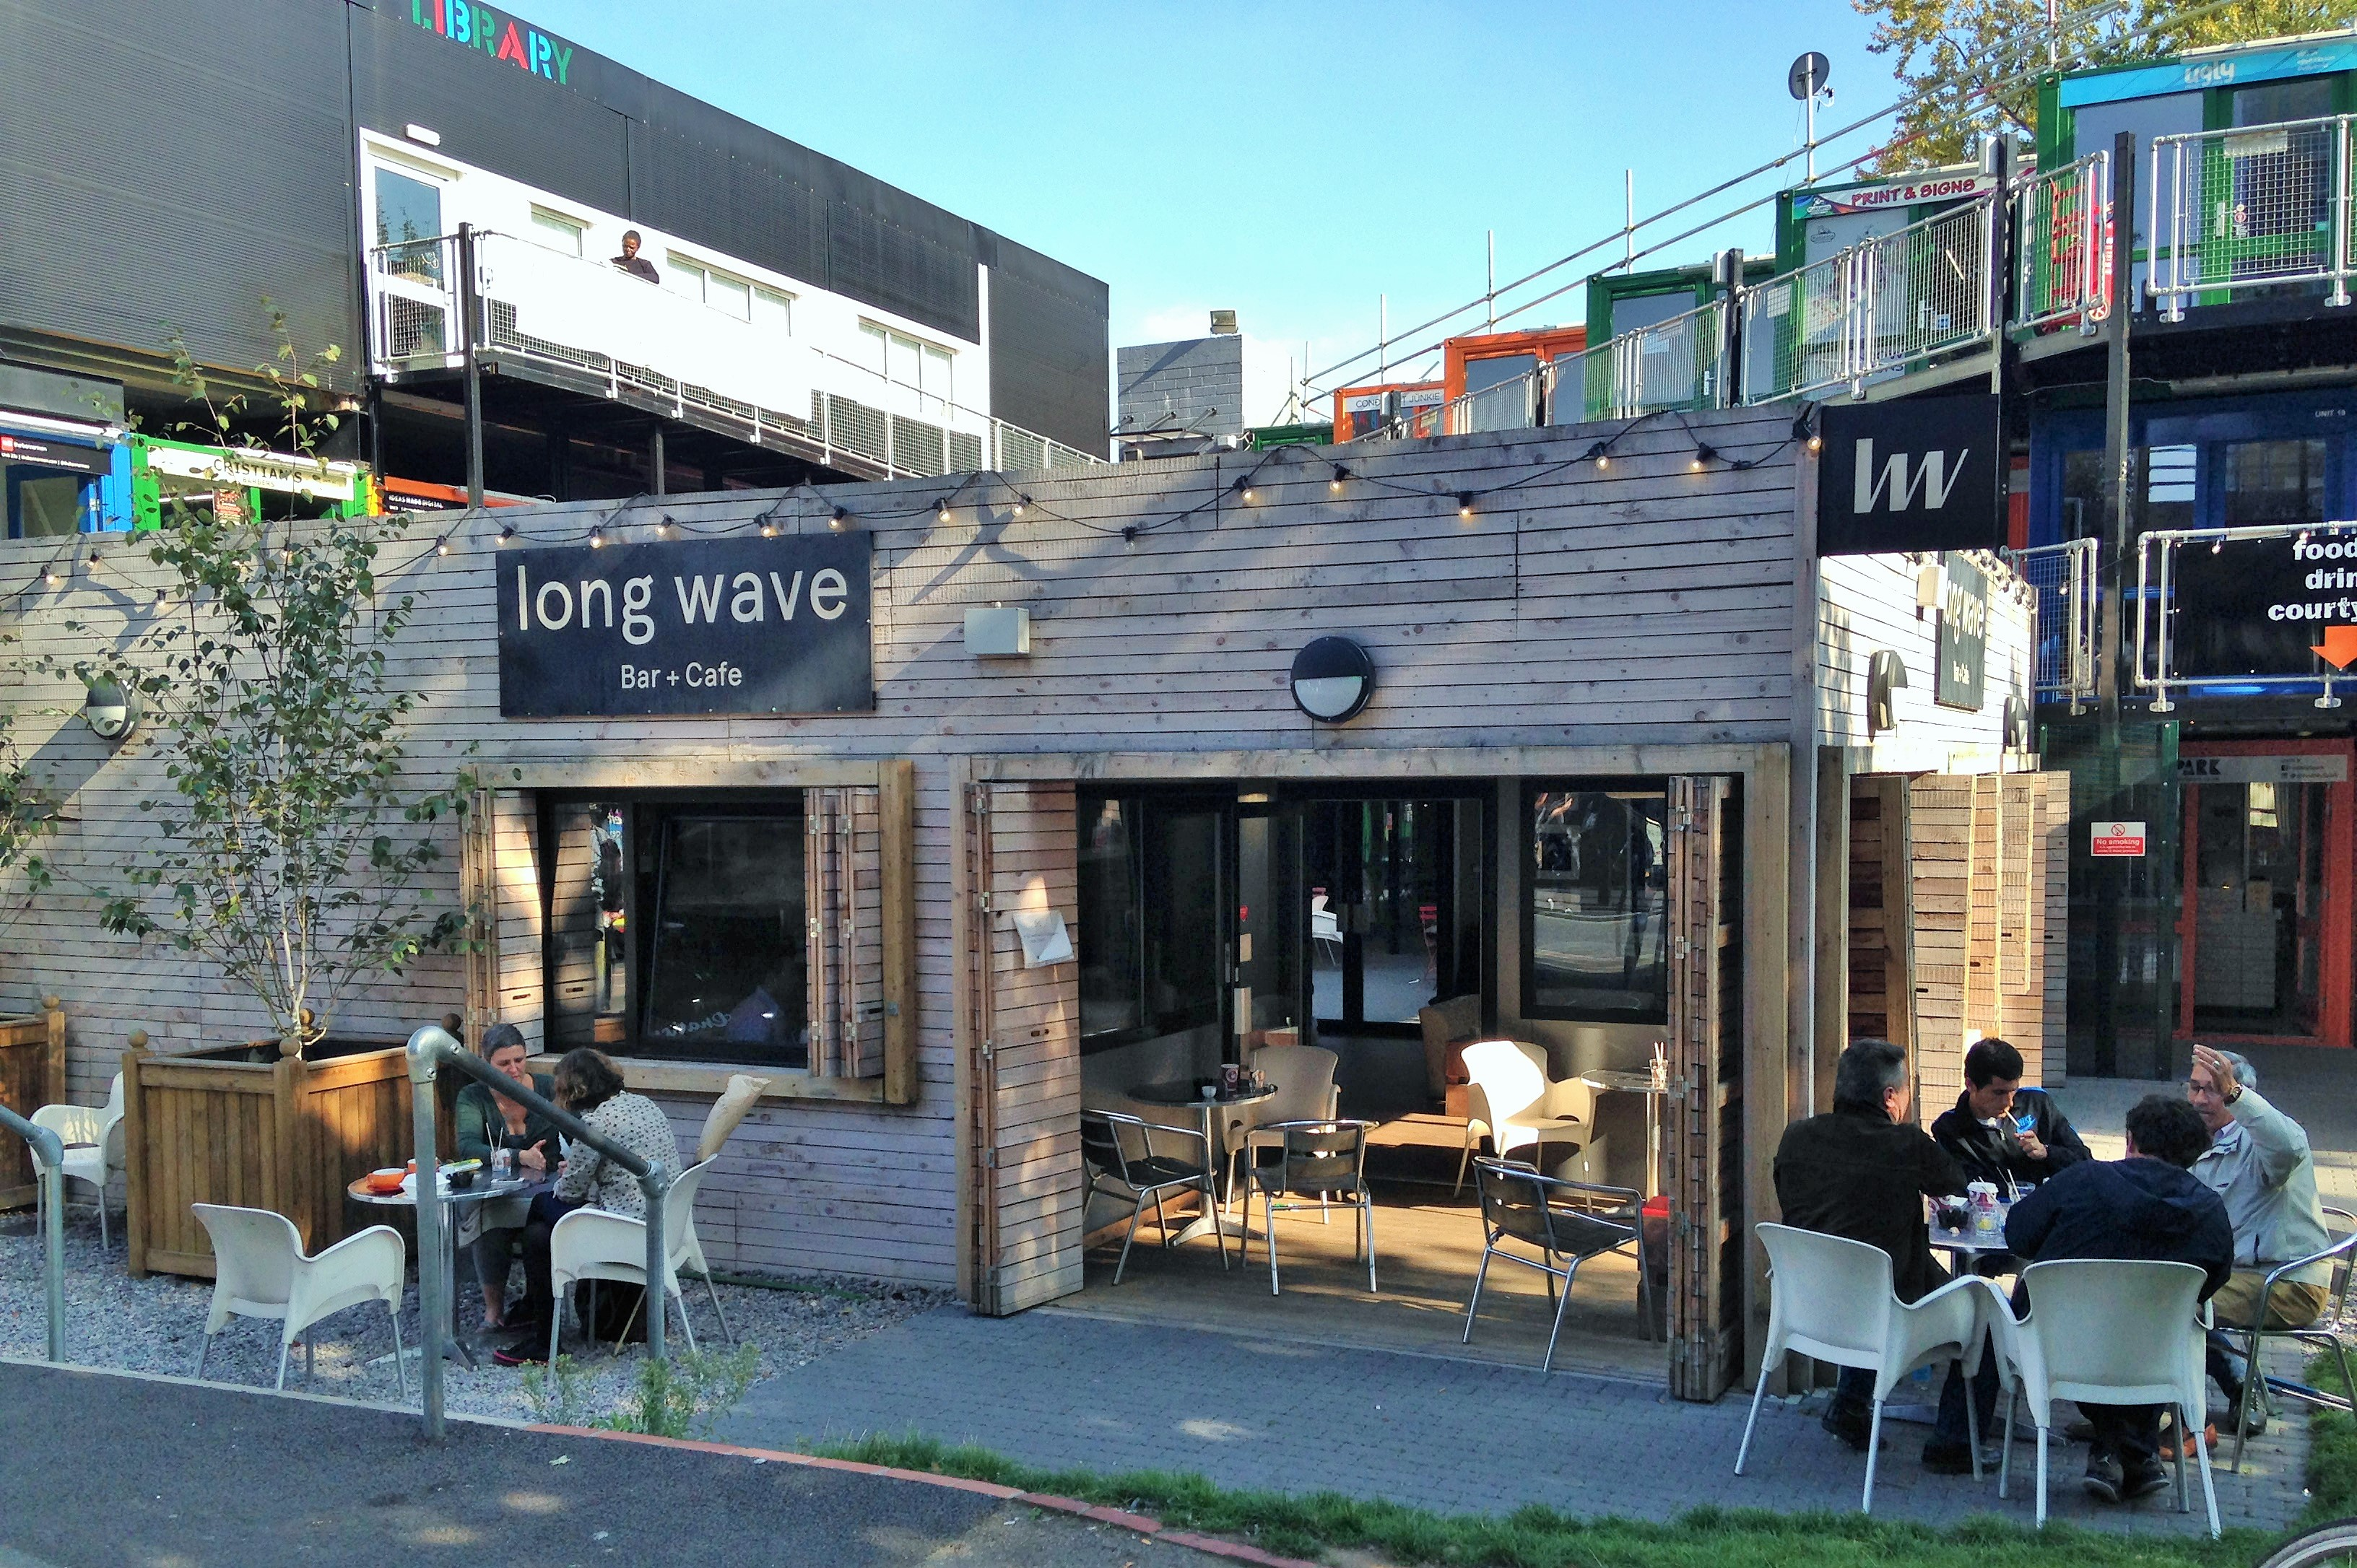 Long Wave Bar & Cafe - kenningtonrunoff.com